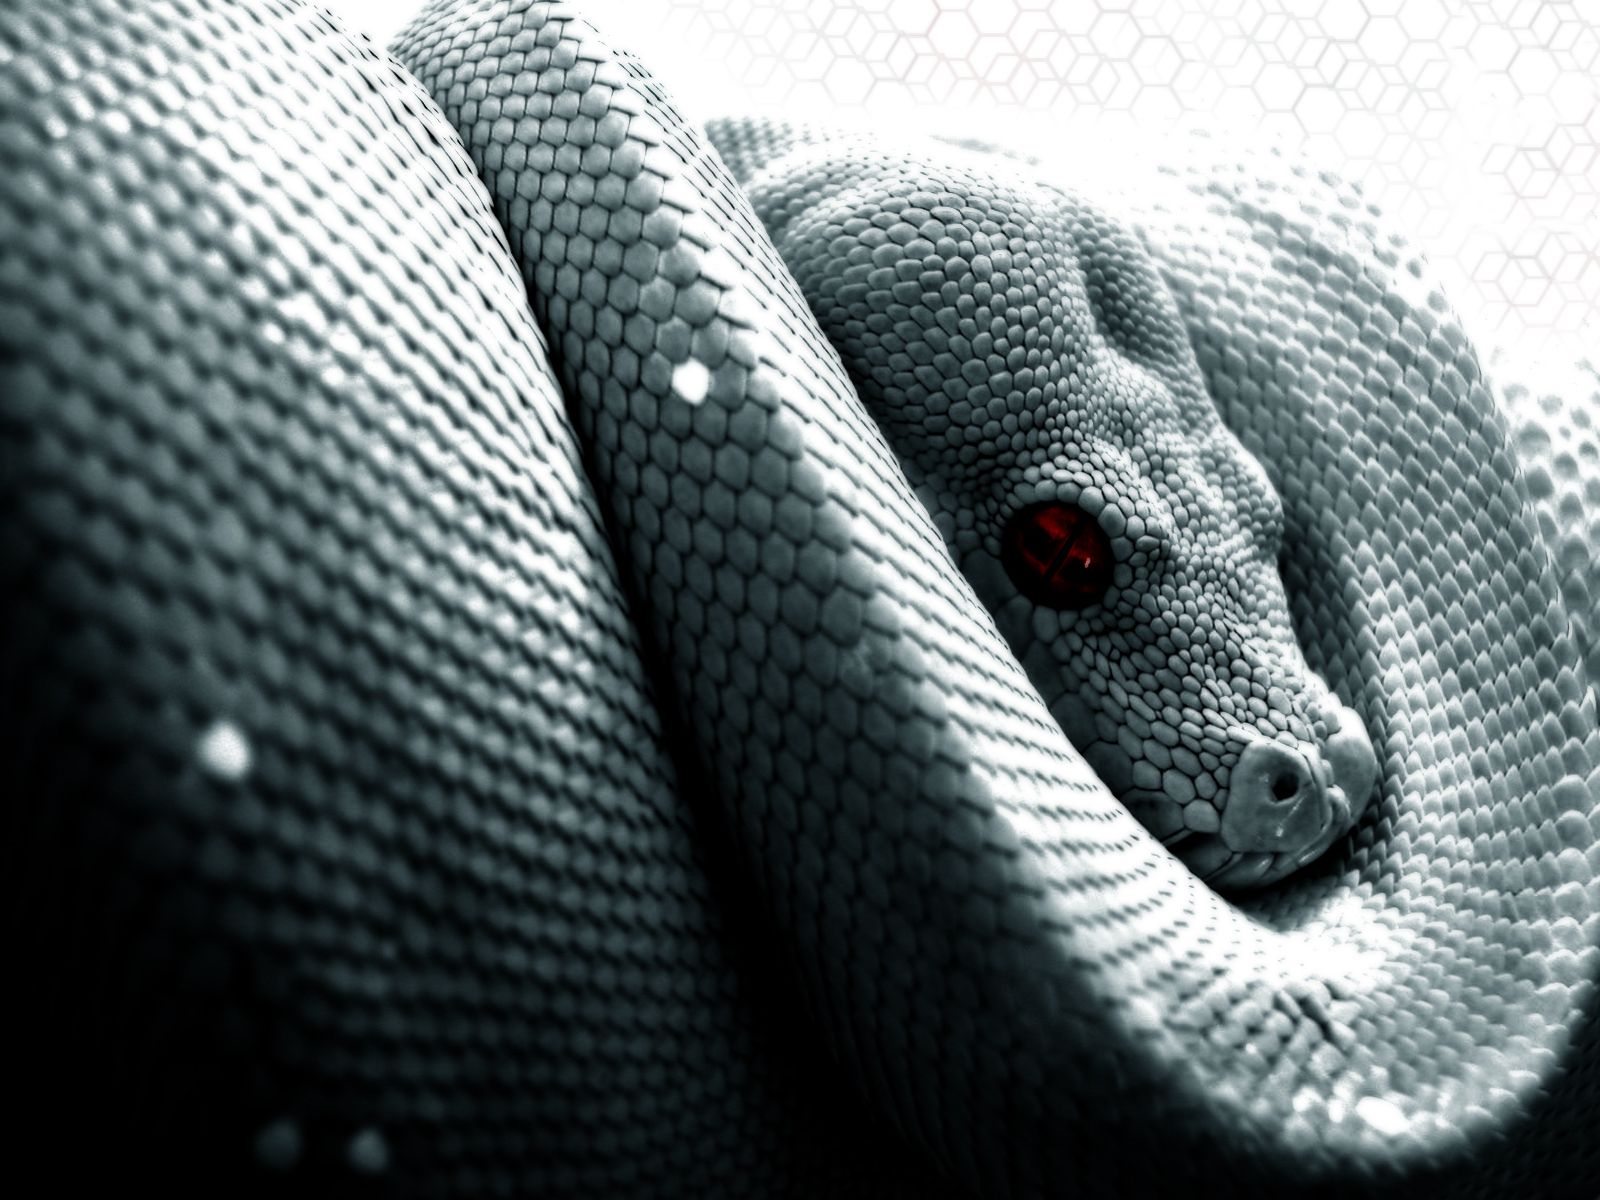 beautiful snake wallpaper hd images one hd wallpaper pictures 640